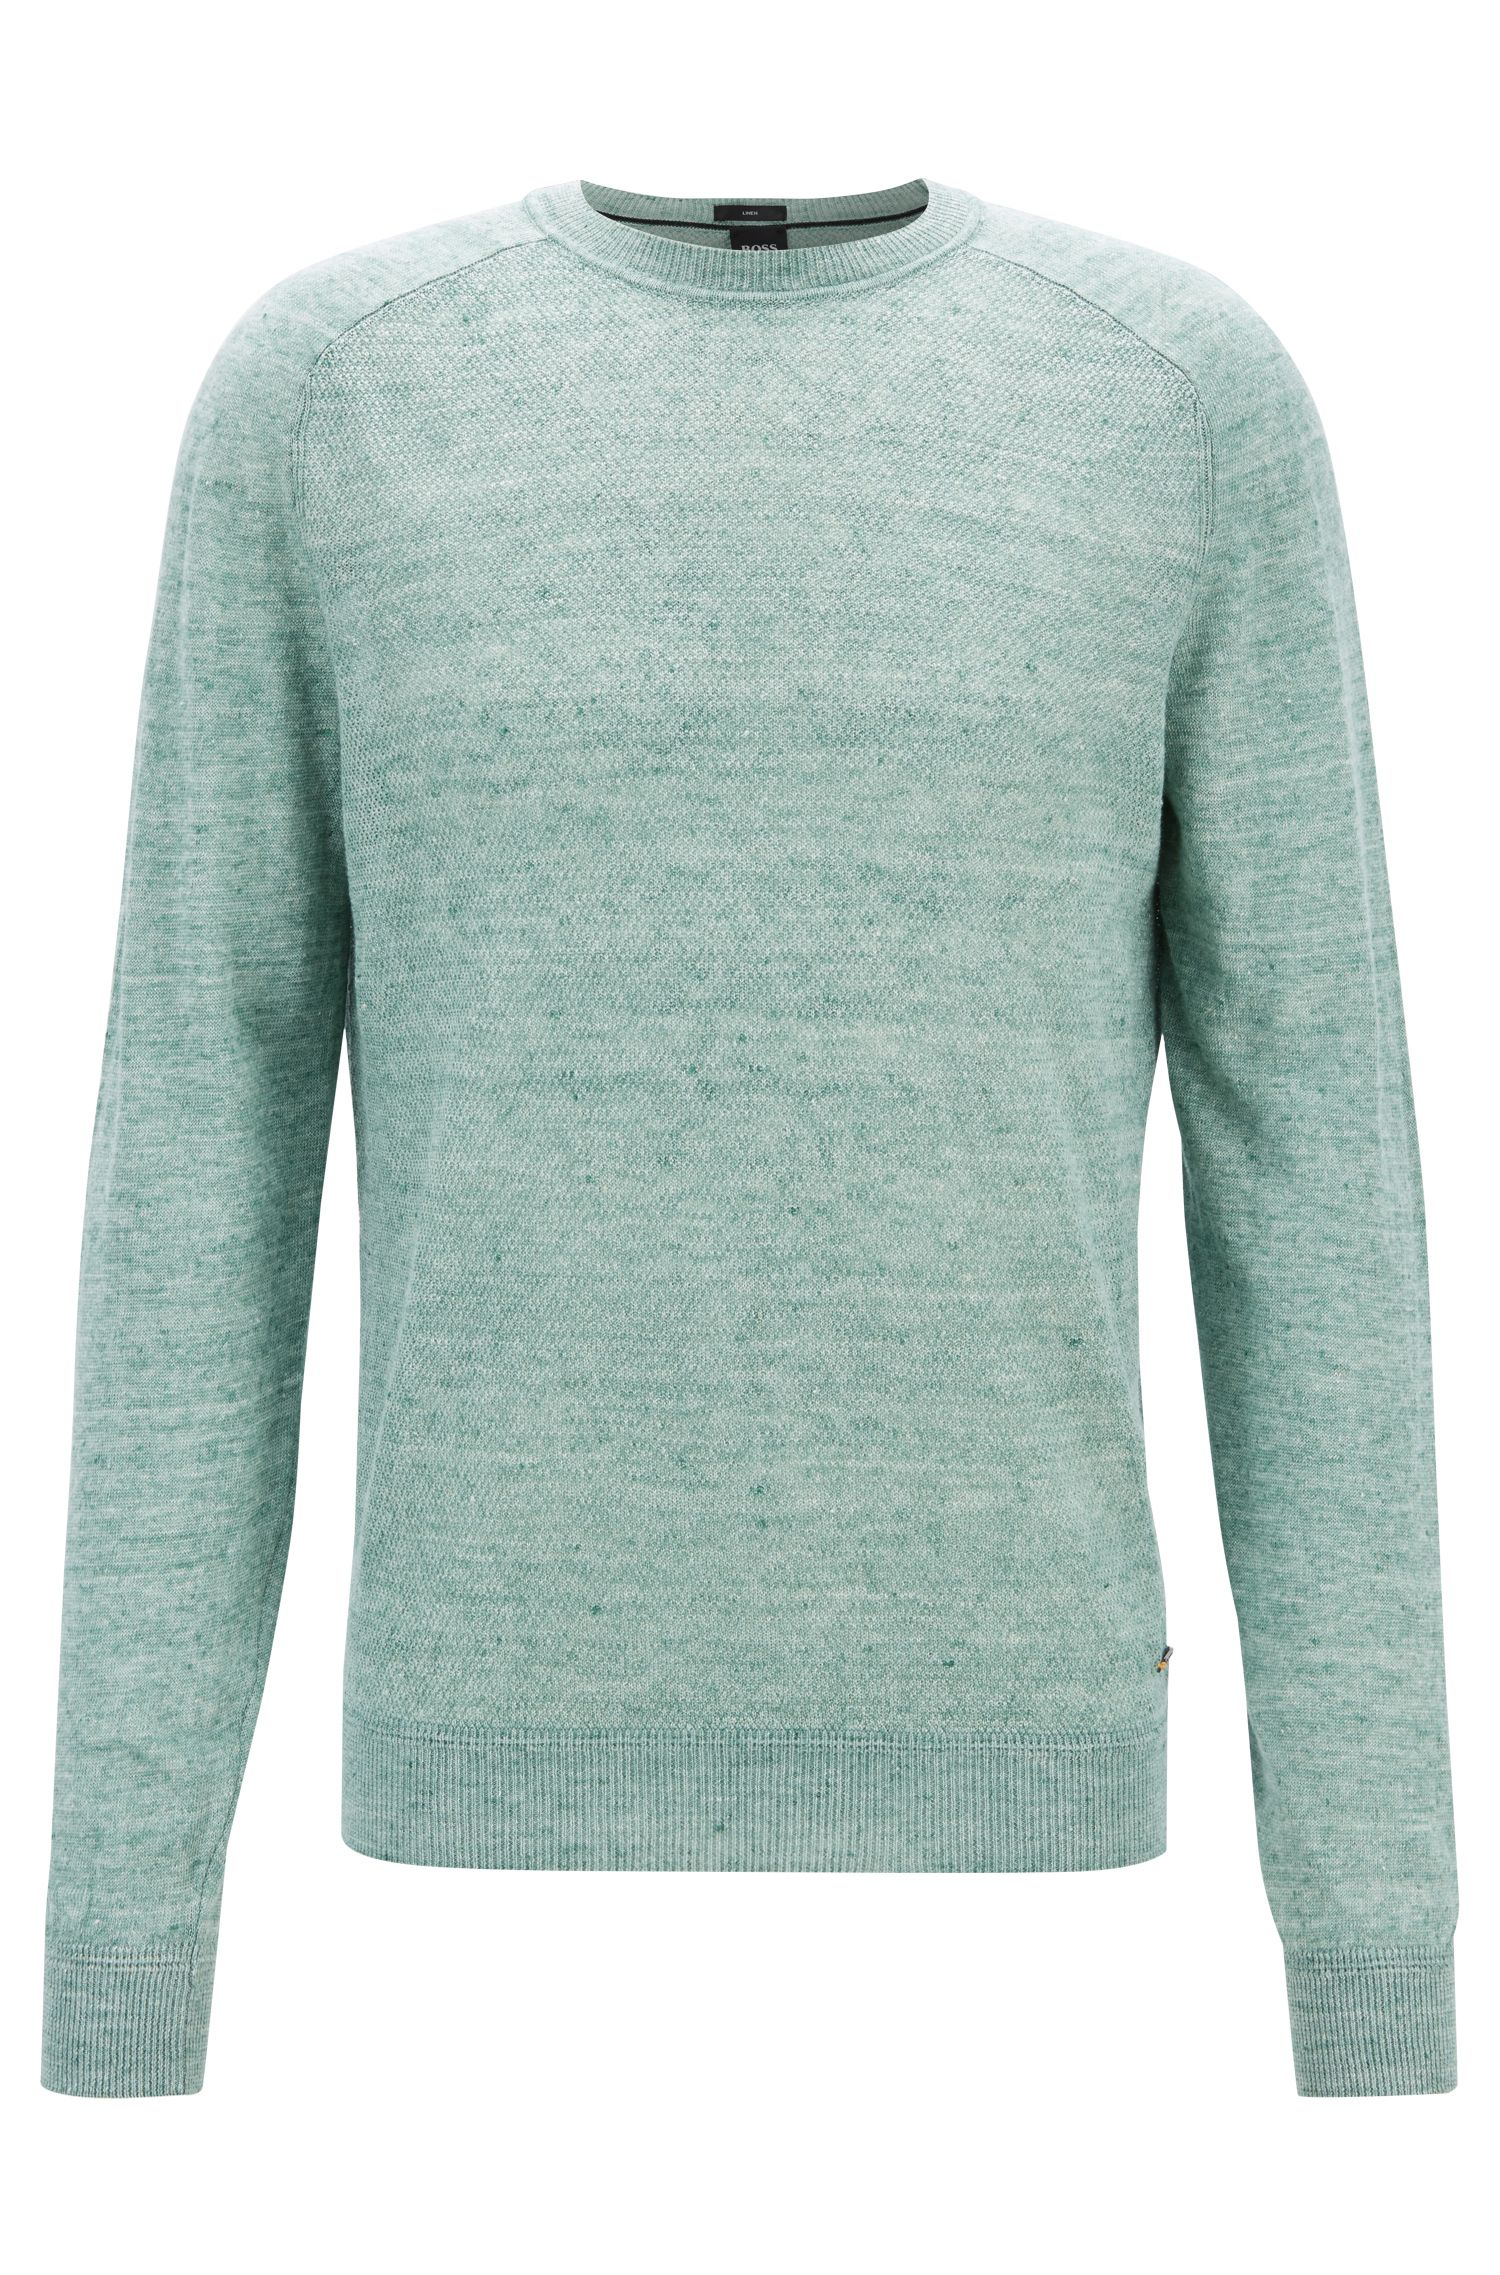 Micro-structured sweater in melange linen with ottoman detailing, Light Green